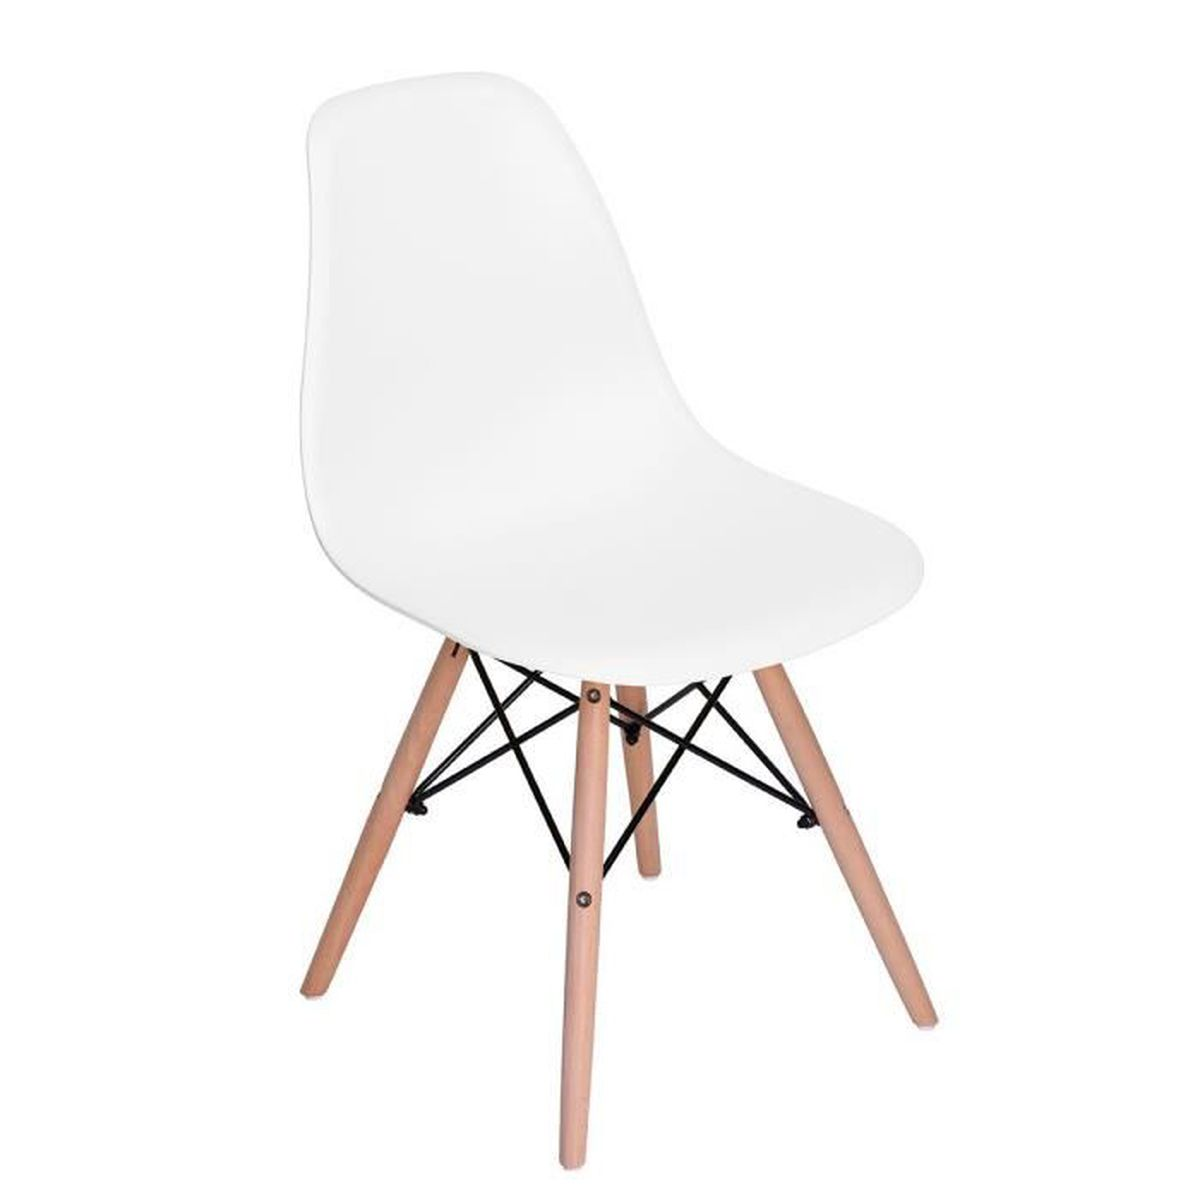 chaises eames blanc achat vente chaises eames blanc pas cher cdiscount. Black Bedroom Furniture Sets. Home Design Ideas